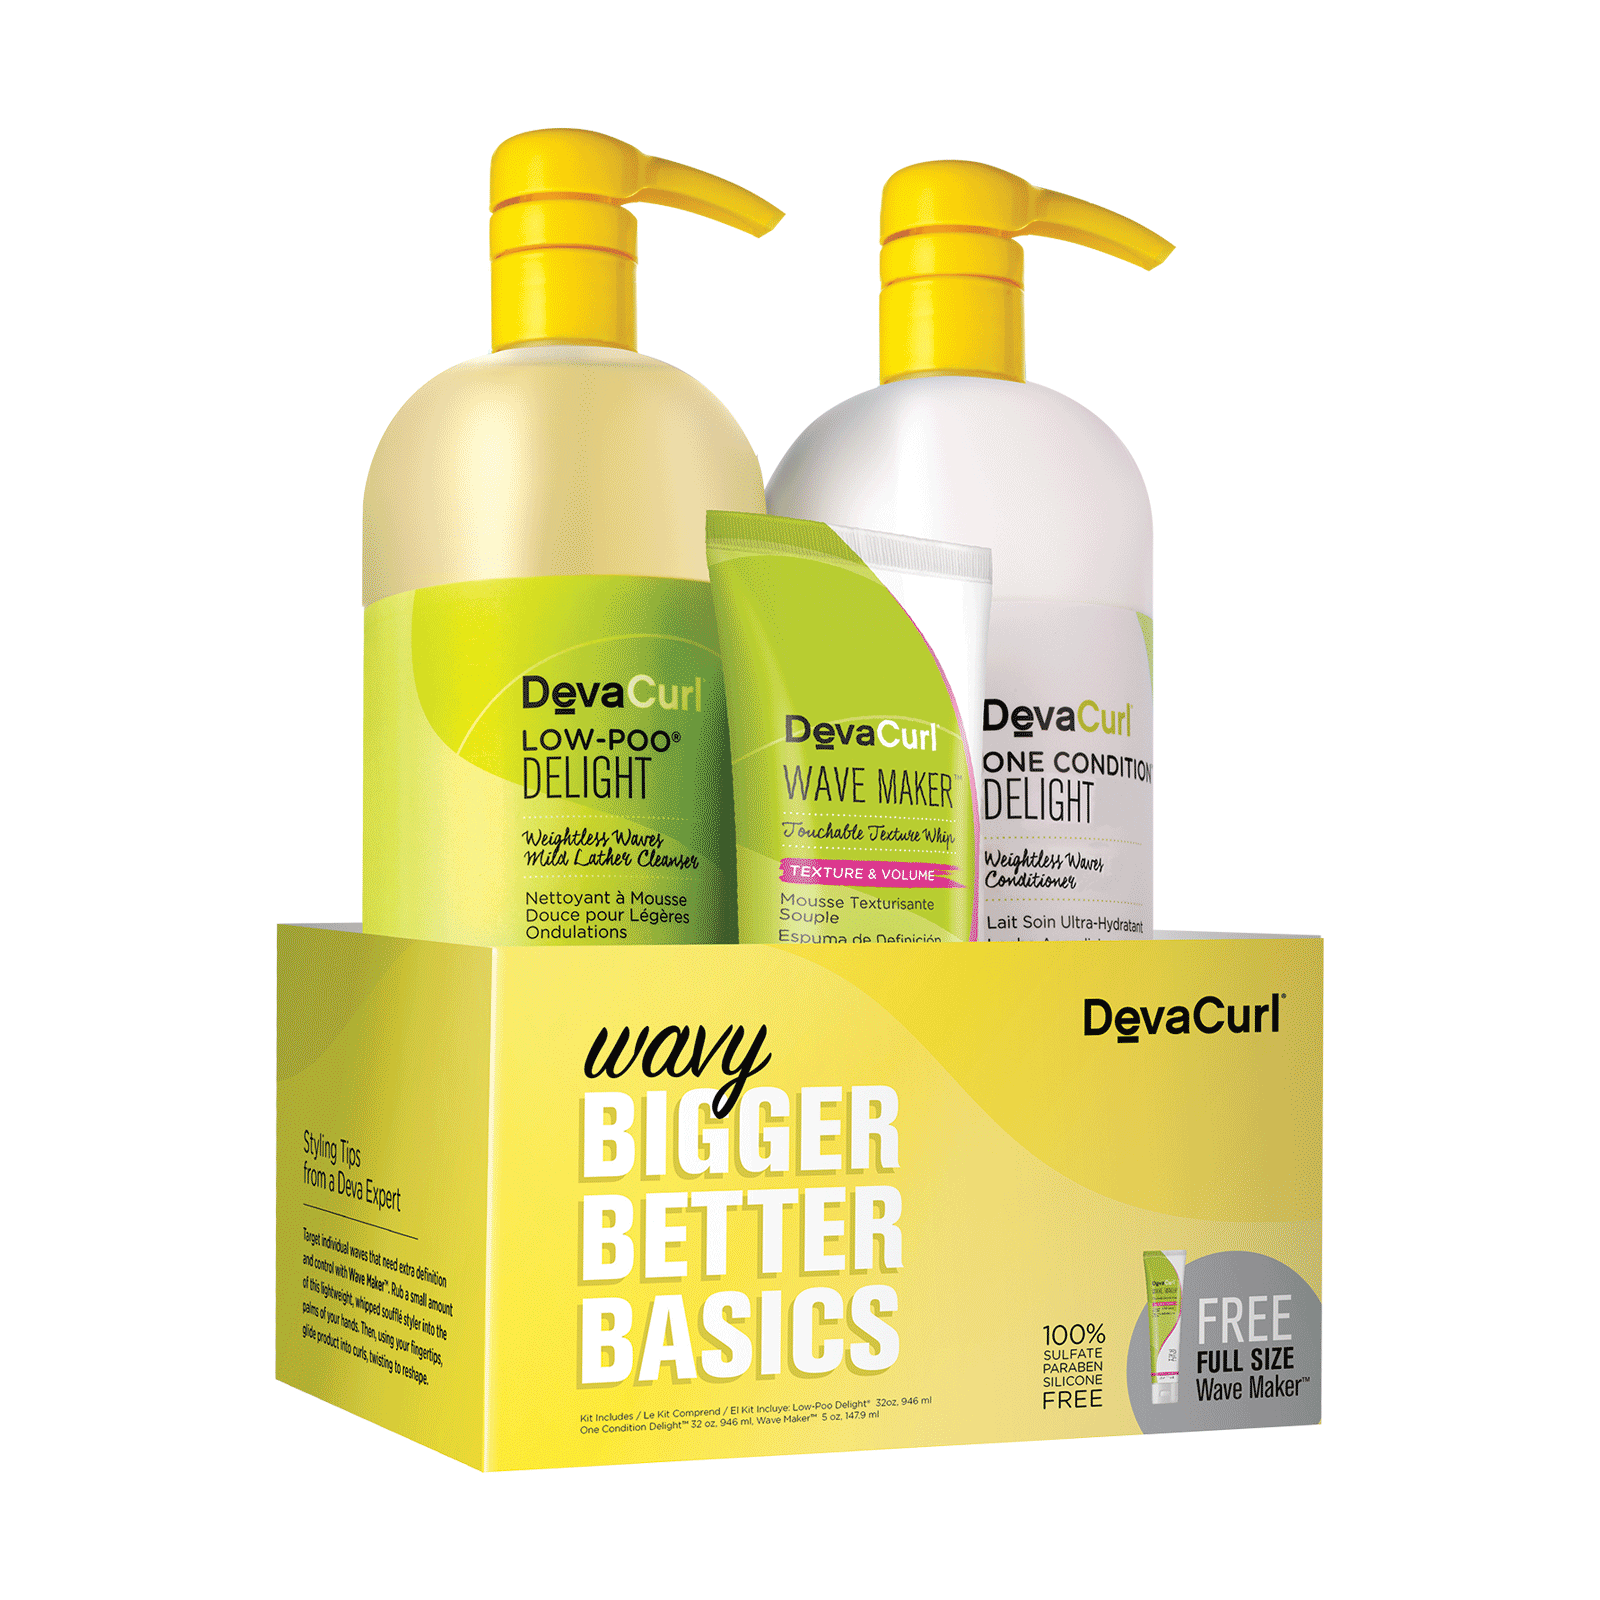 Low-Poo Delight, One Condition, Touchable Texture Whip Trio